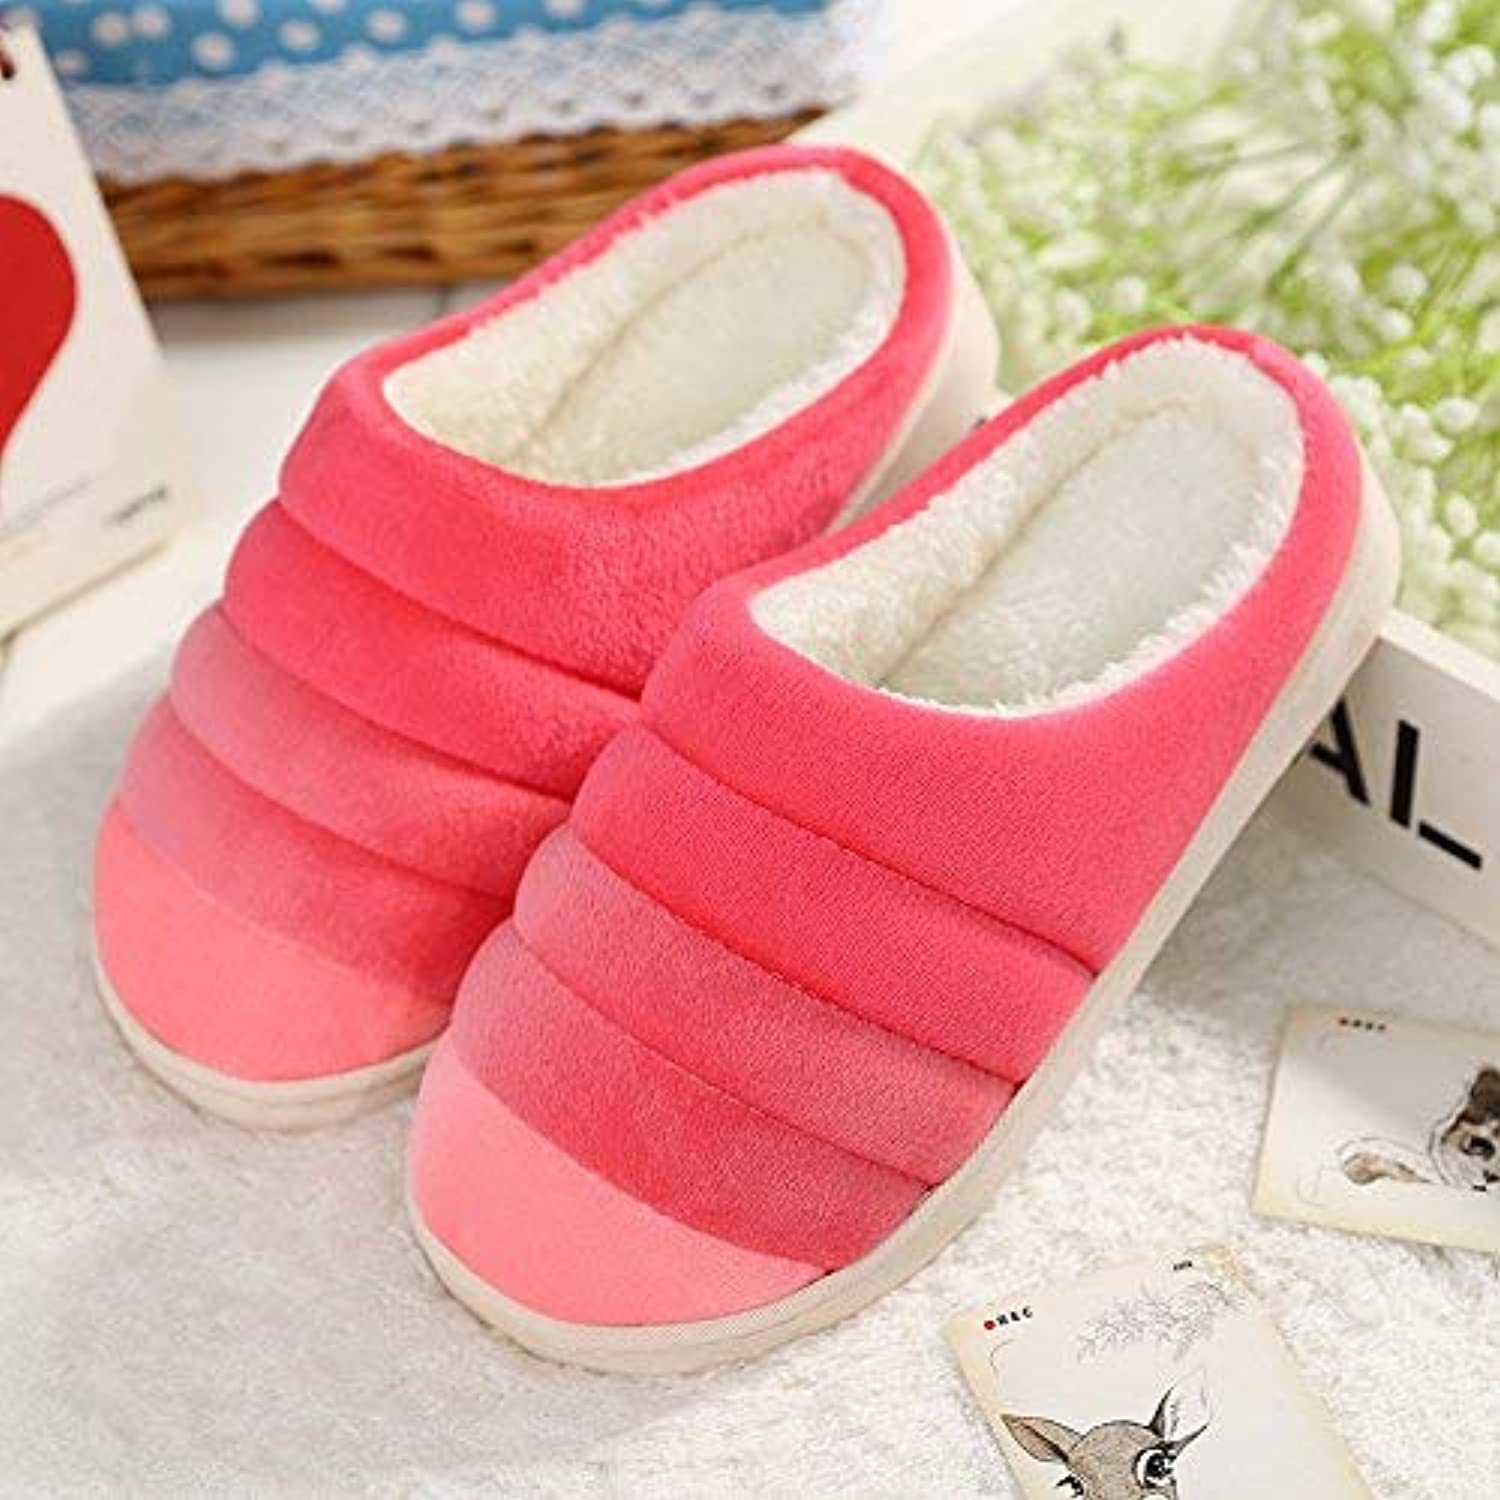 Lady Slippers Women 's Home Cotton Slippers Indoor Keep Warm Soild color Casual Slippers Personality Quality for Women Pink